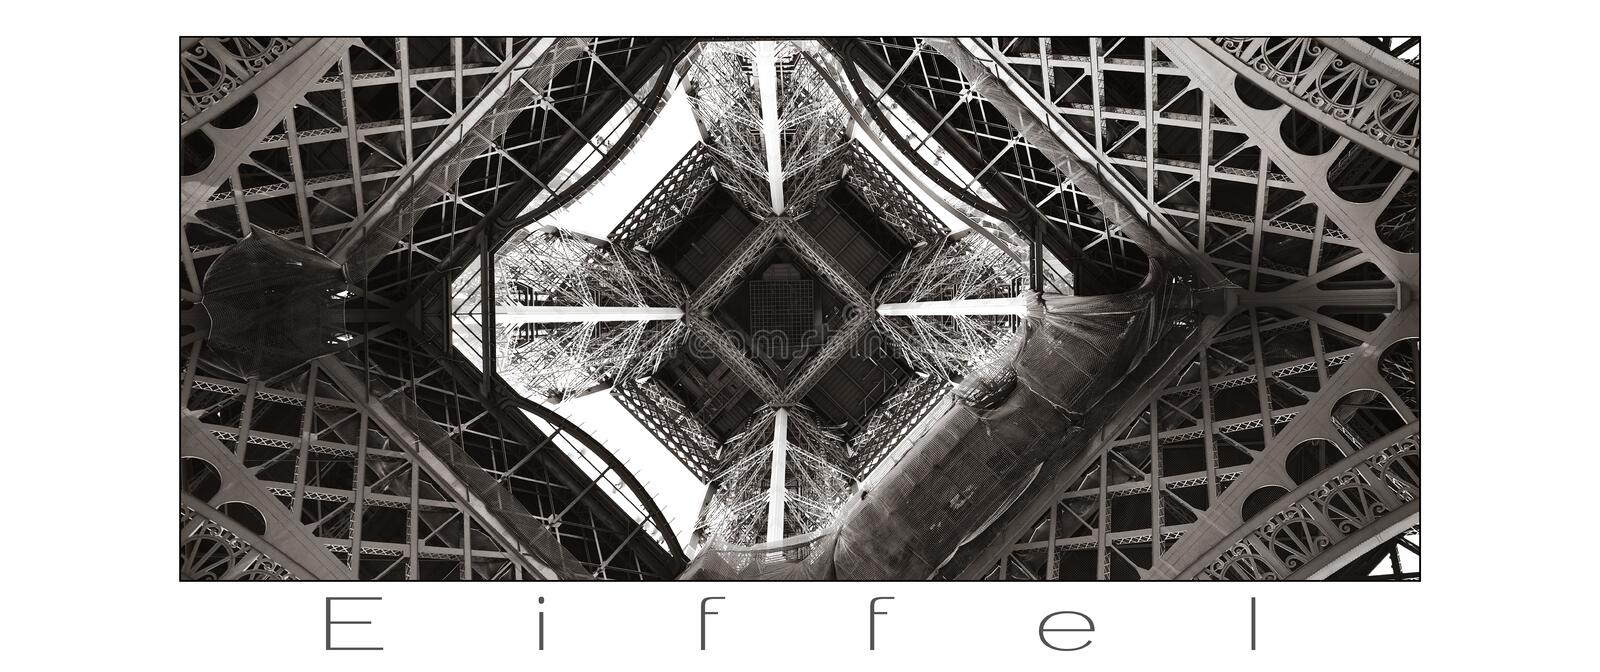 Eiffel Tower detail with white background and gray lettering. Paris, France. royalty free stock photos